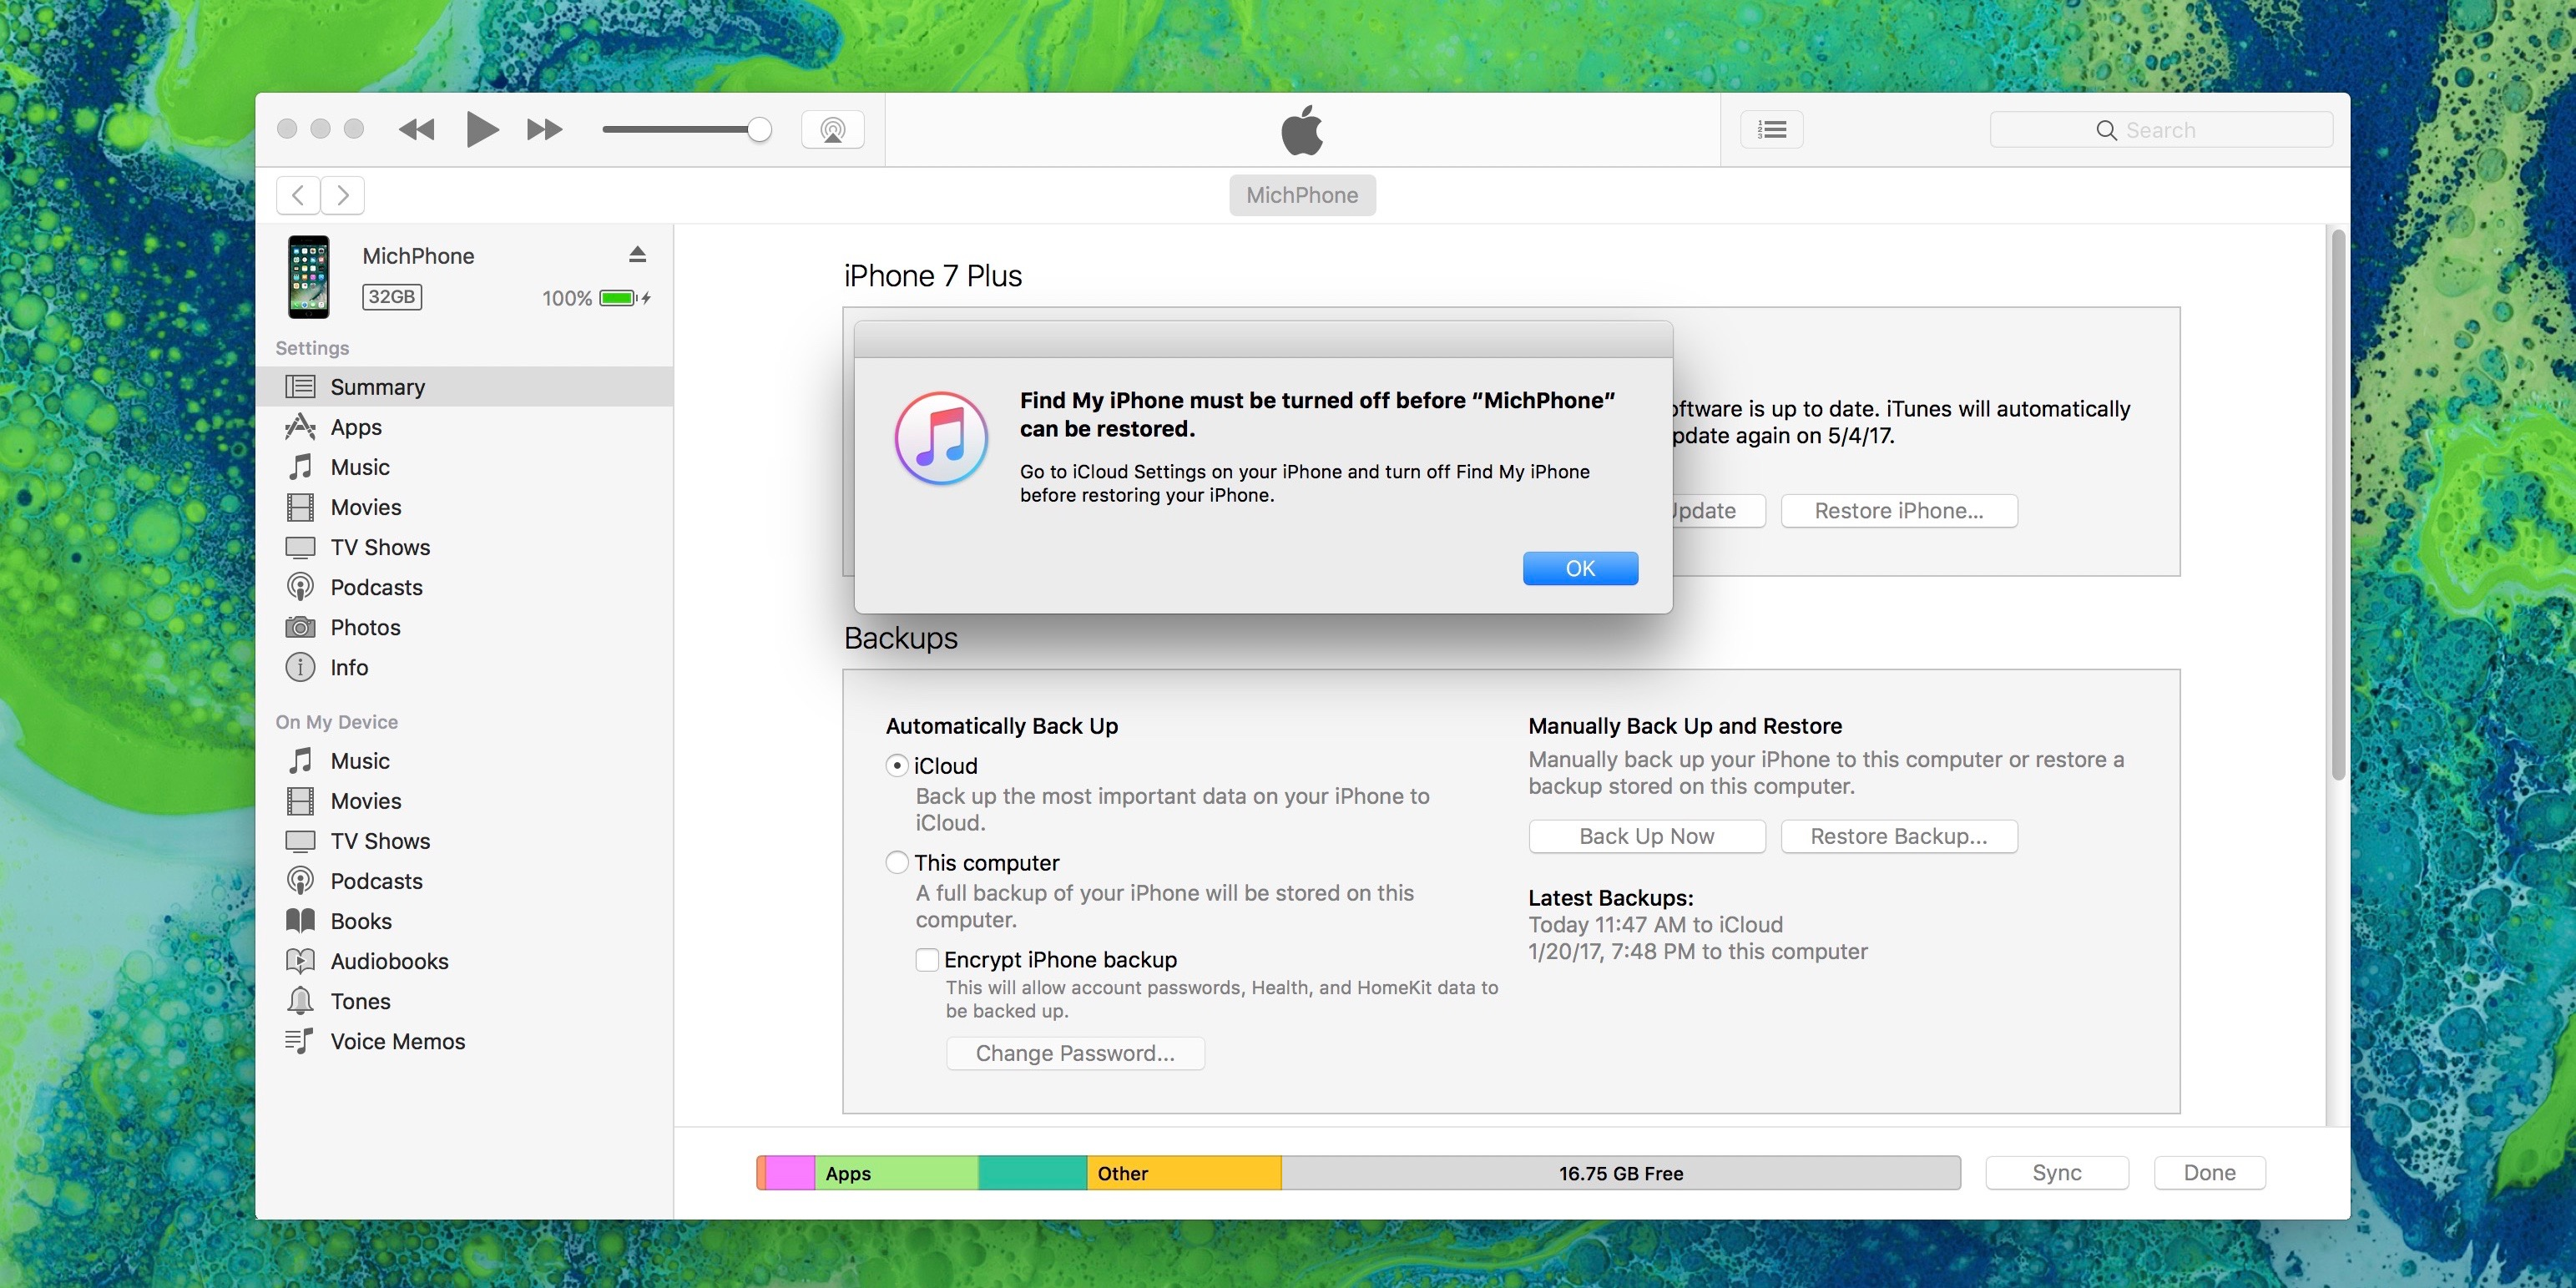 How to restore iPhone from iTunes Backup - 9to5Mac